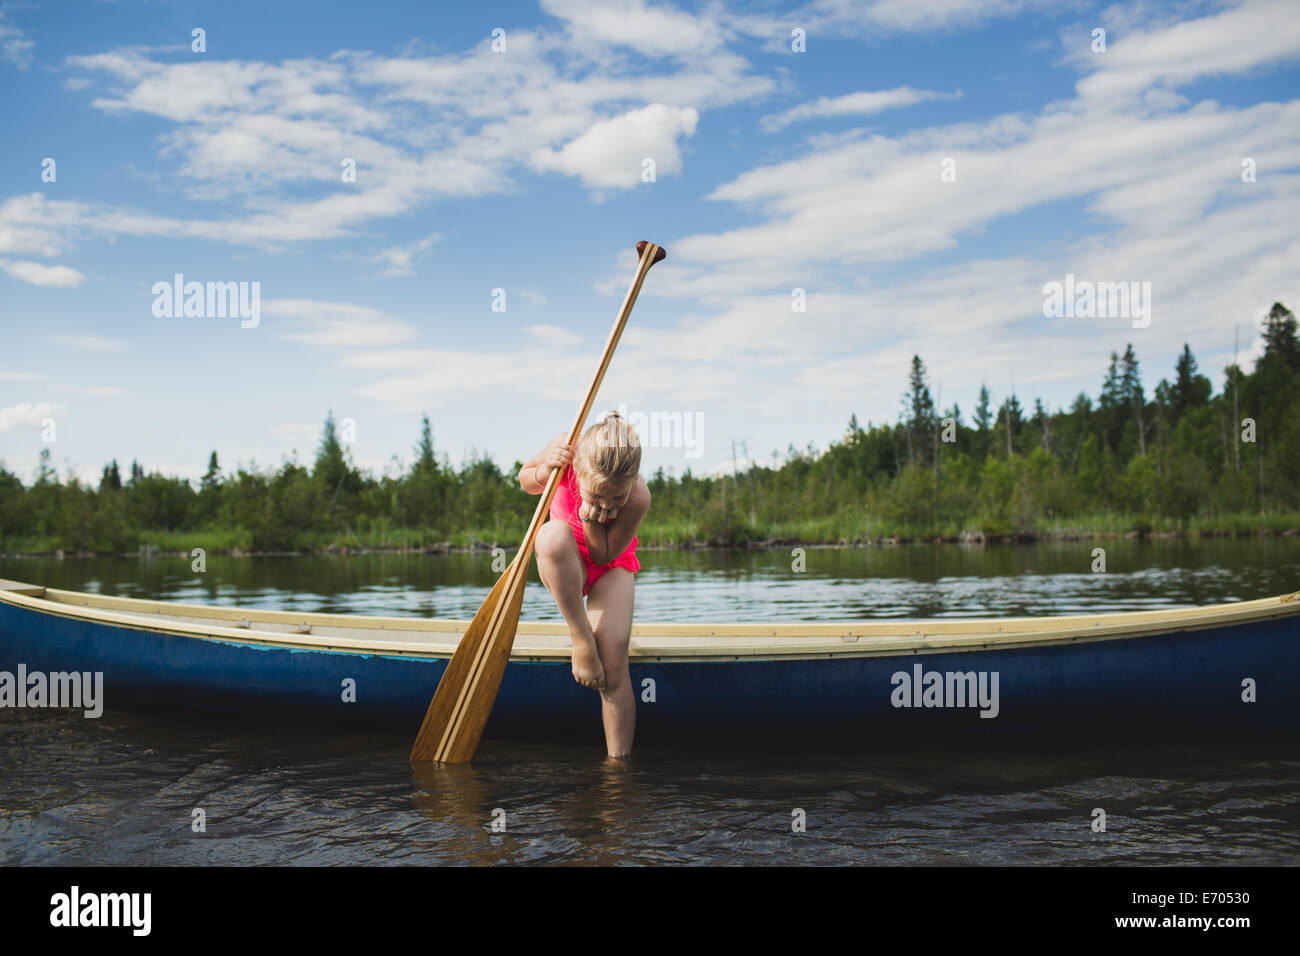 Curious girl looking down at water in Indian river, Ontario, Canada - Stock Image